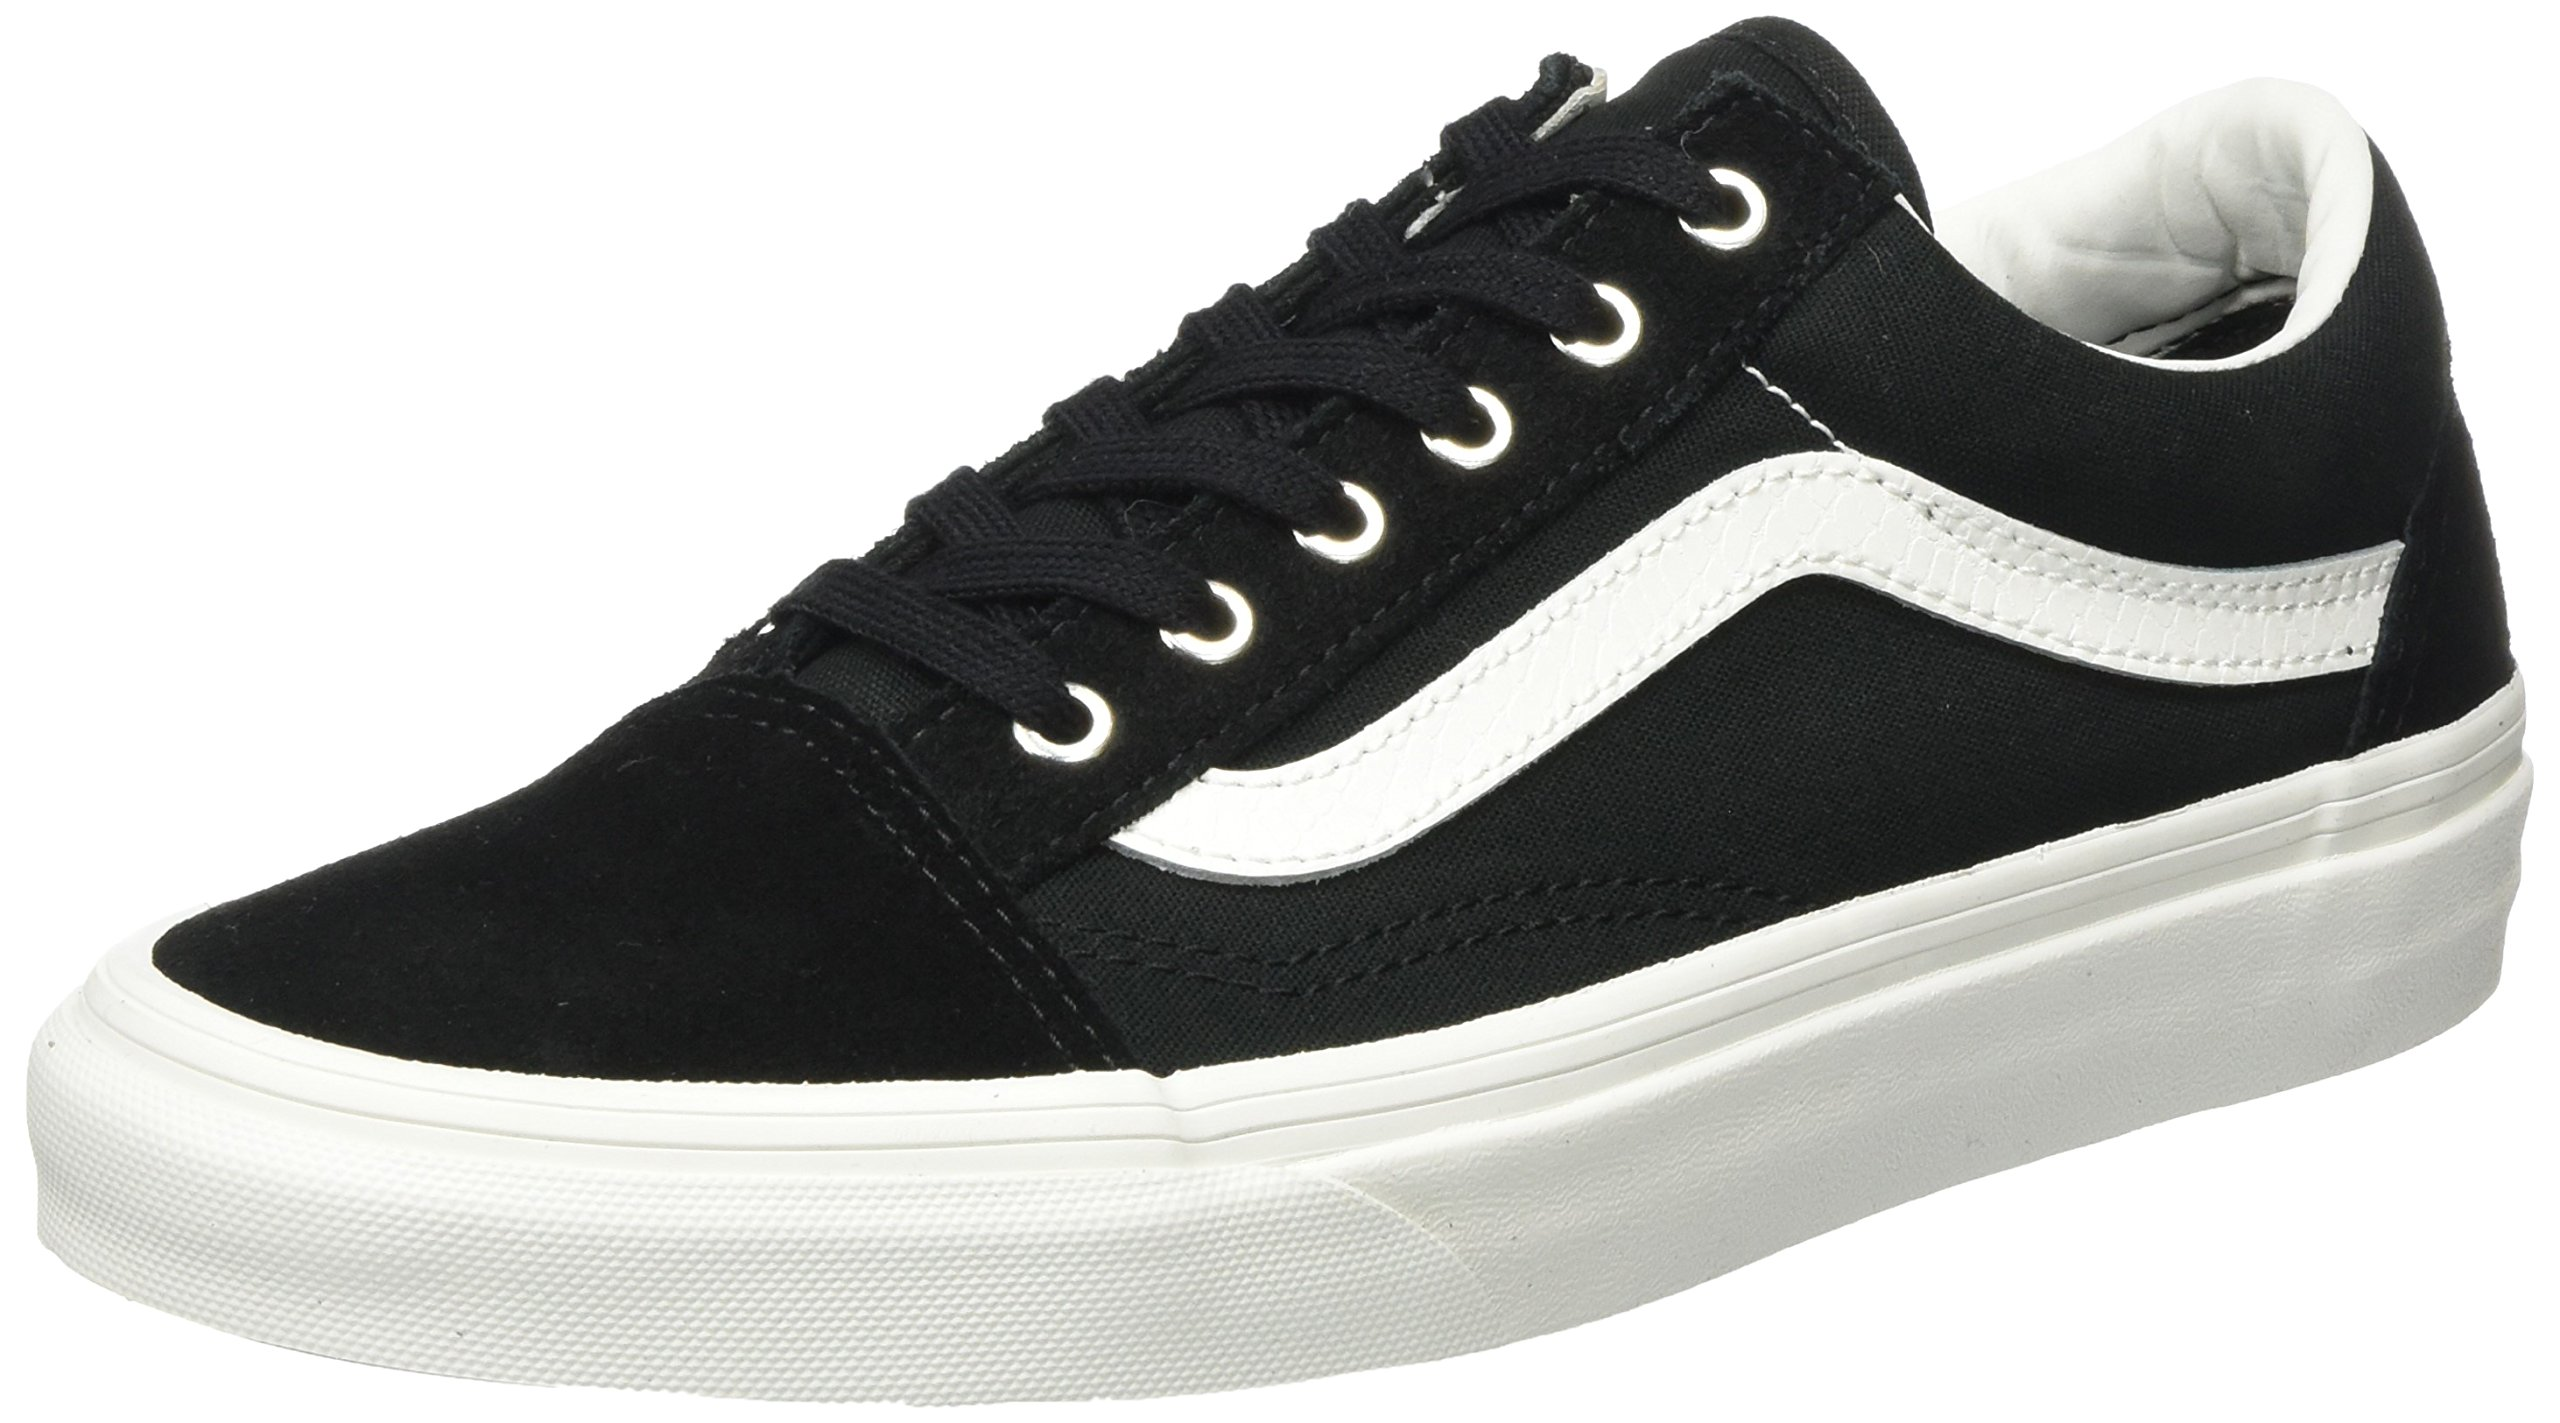 f0481db77d0304 Galleon - Vans Unisex Adults Old Skool Classic Suede Canvas Sneakers ...